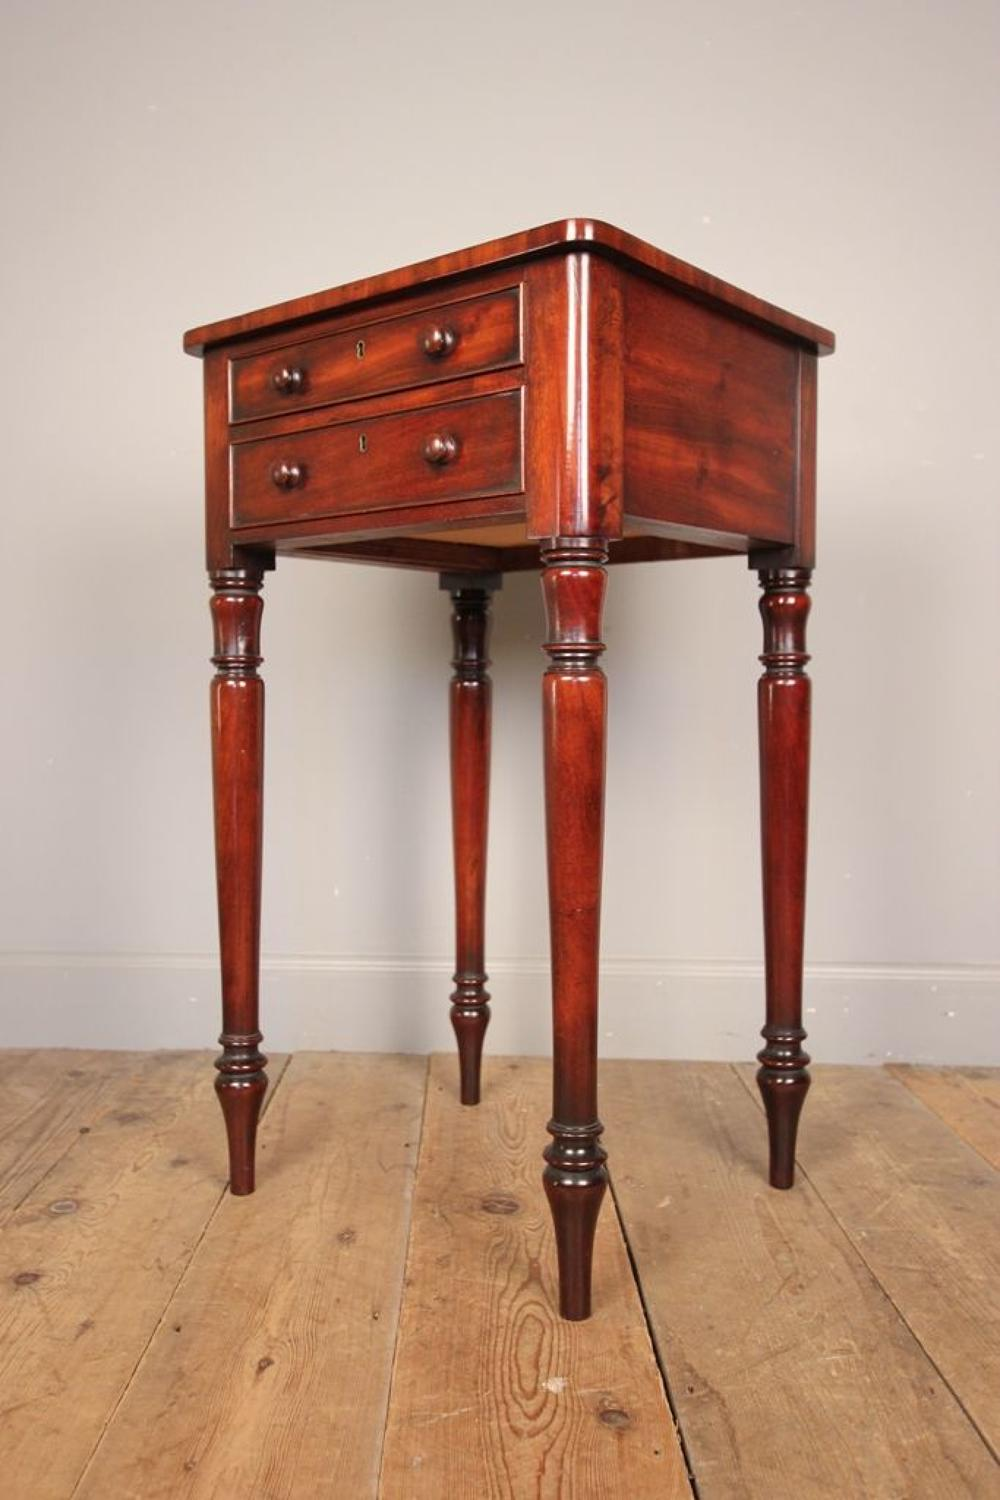 A Small Versatile 19th C. Mahogany Table